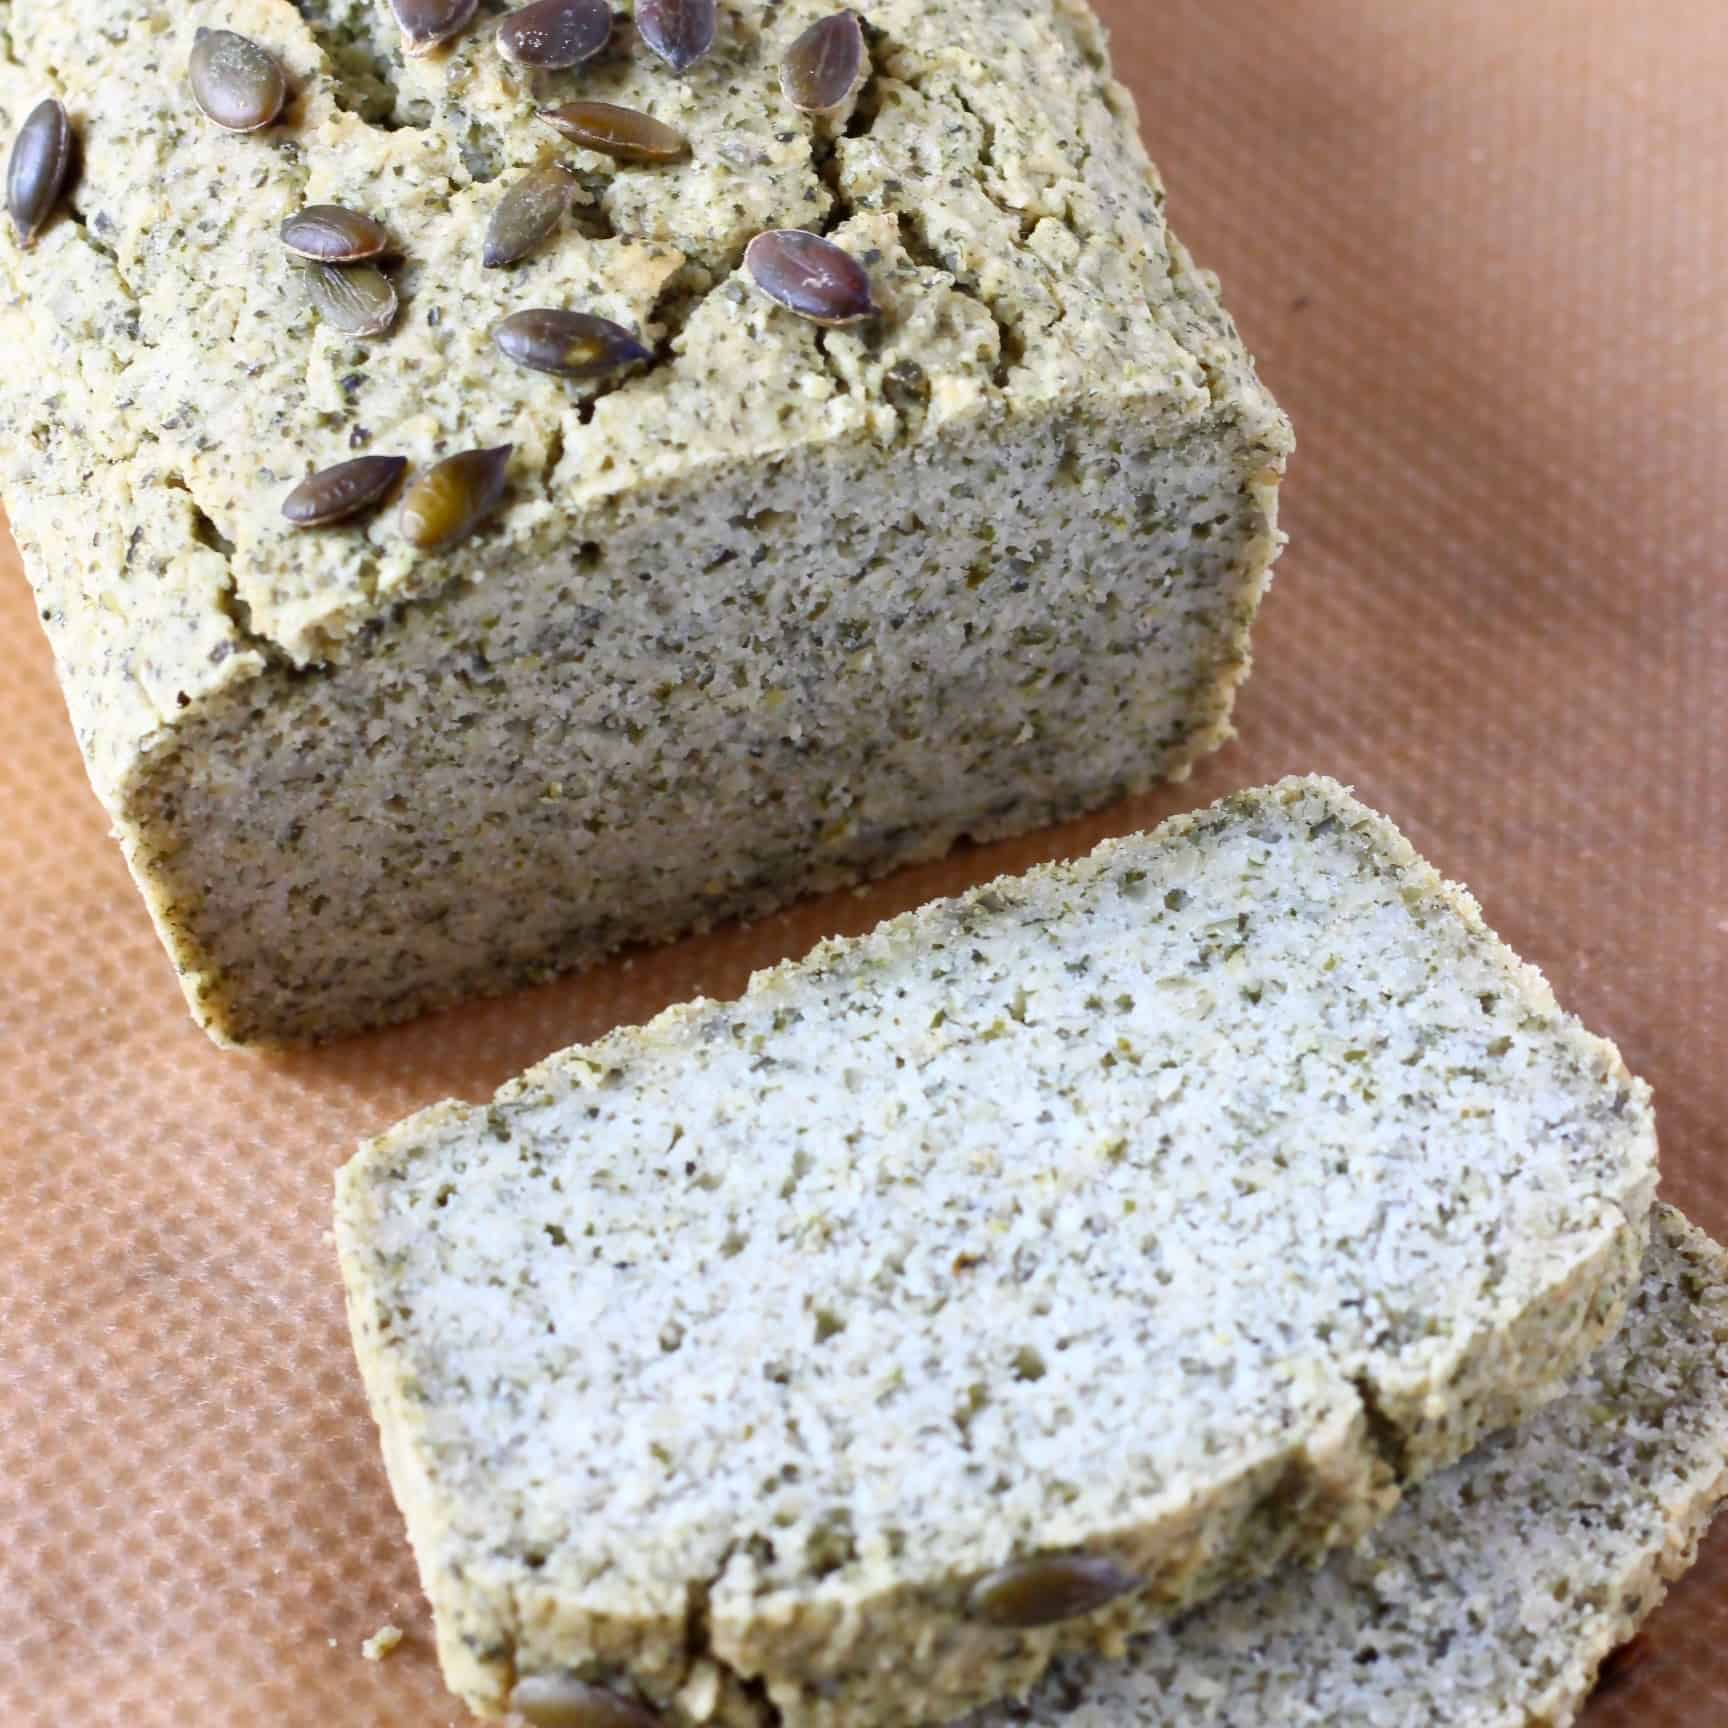 A loaf of pumpkin seed bread with two slices next to it against a sheet of brown baking paper